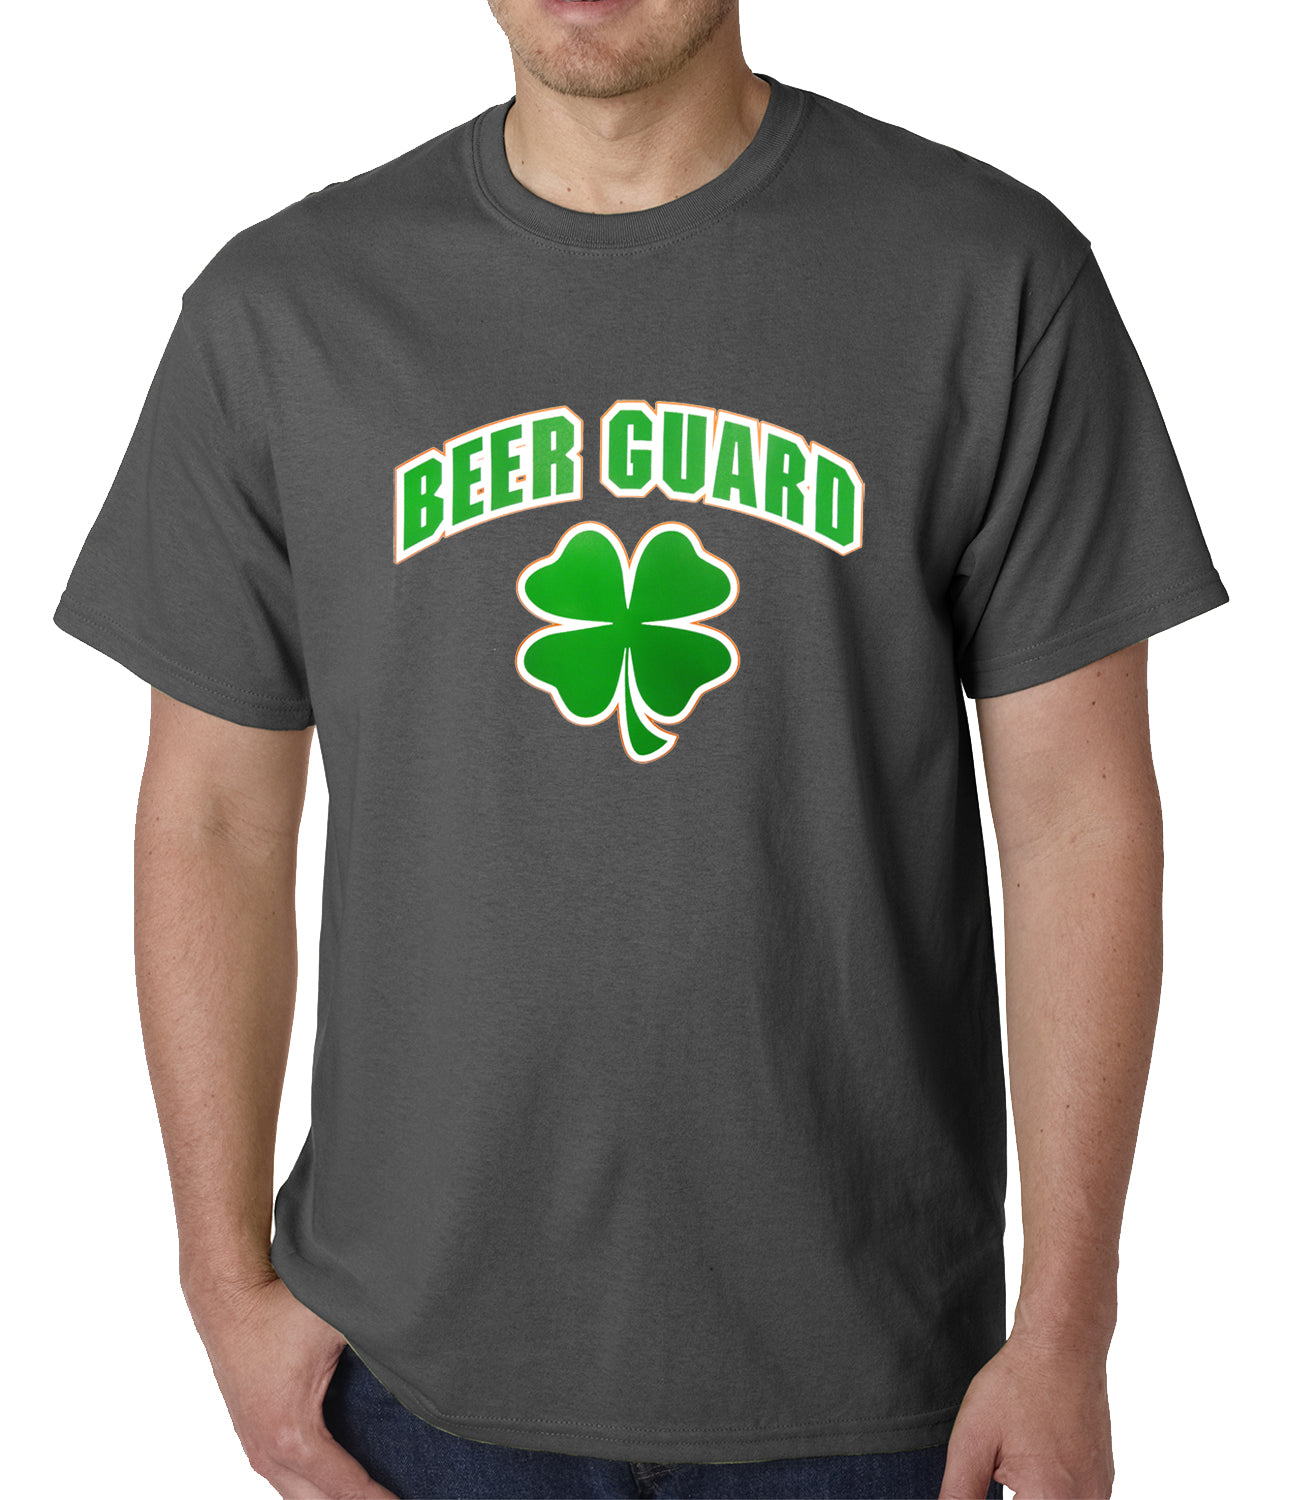 Beer Guard Irish Shamrock St. Patrick's Day Mens T-shirt Charcoal Grey